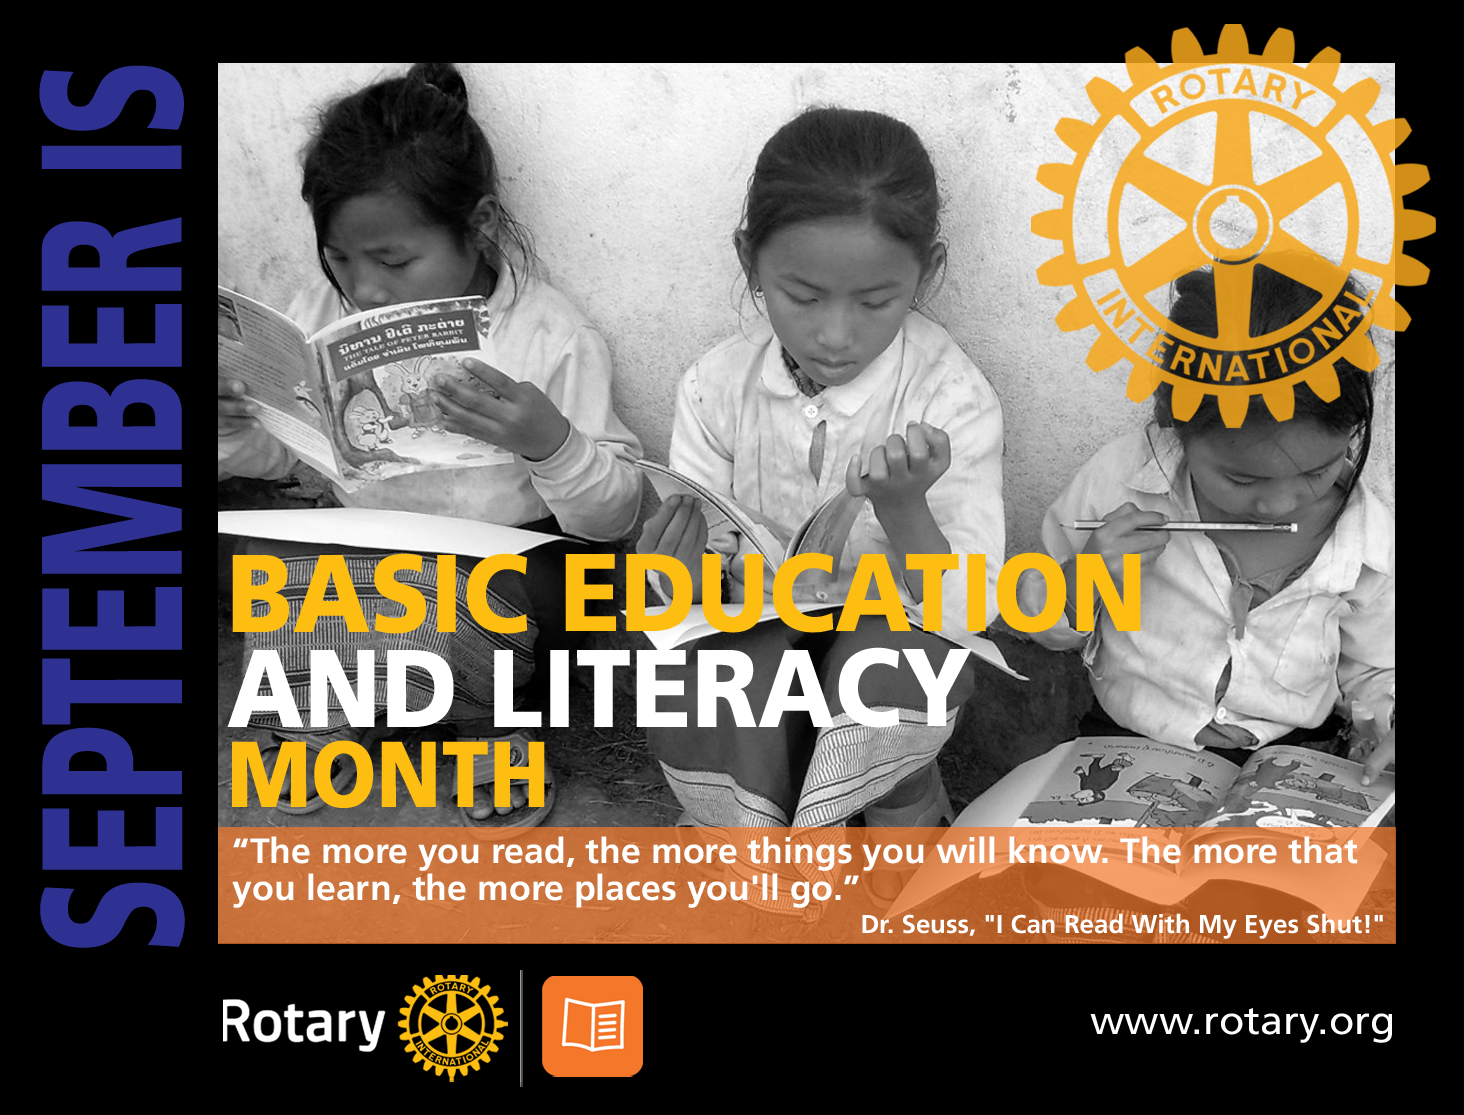 September is Basic Education & Literacy Month | District 5730